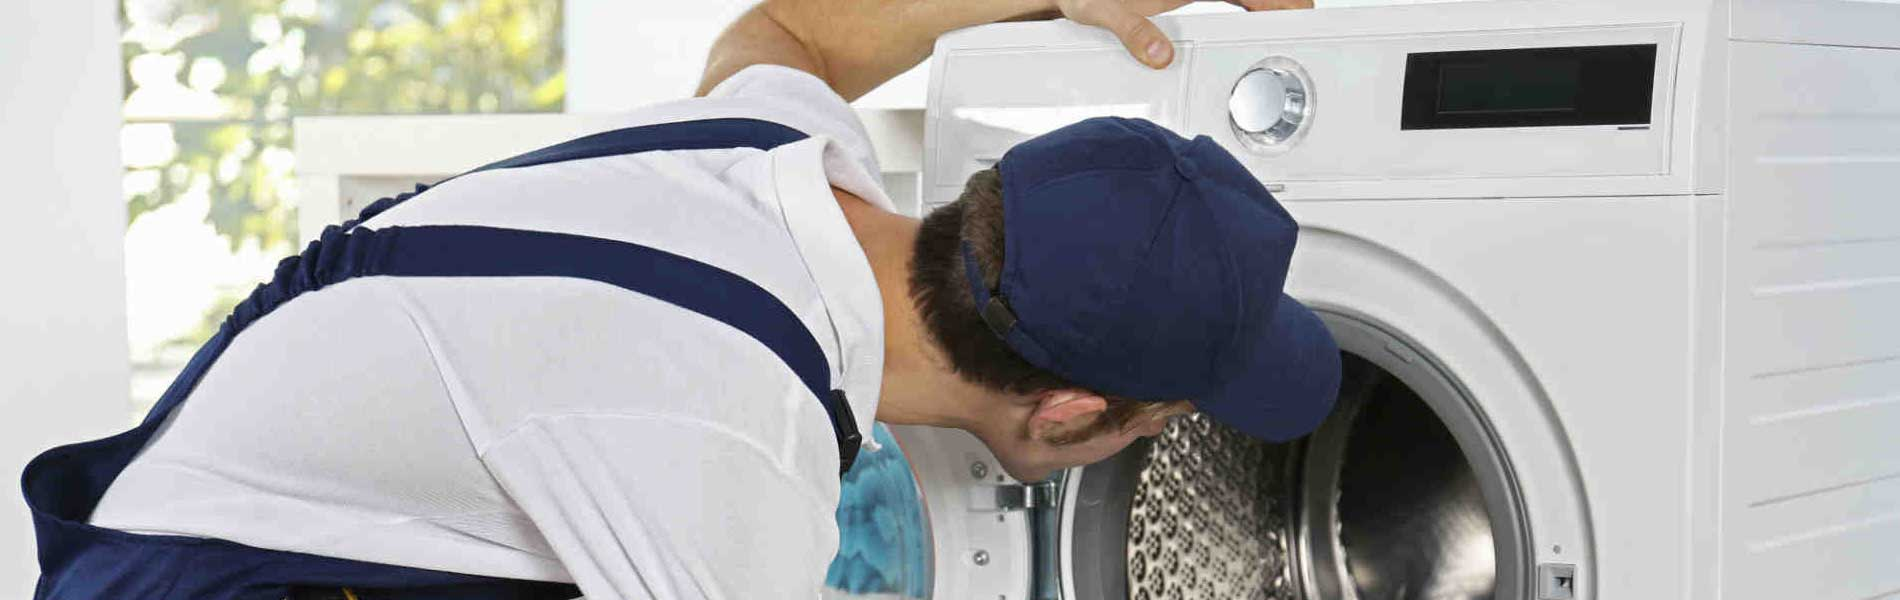 Onida Washing Machine Repair in Kumananchavadi